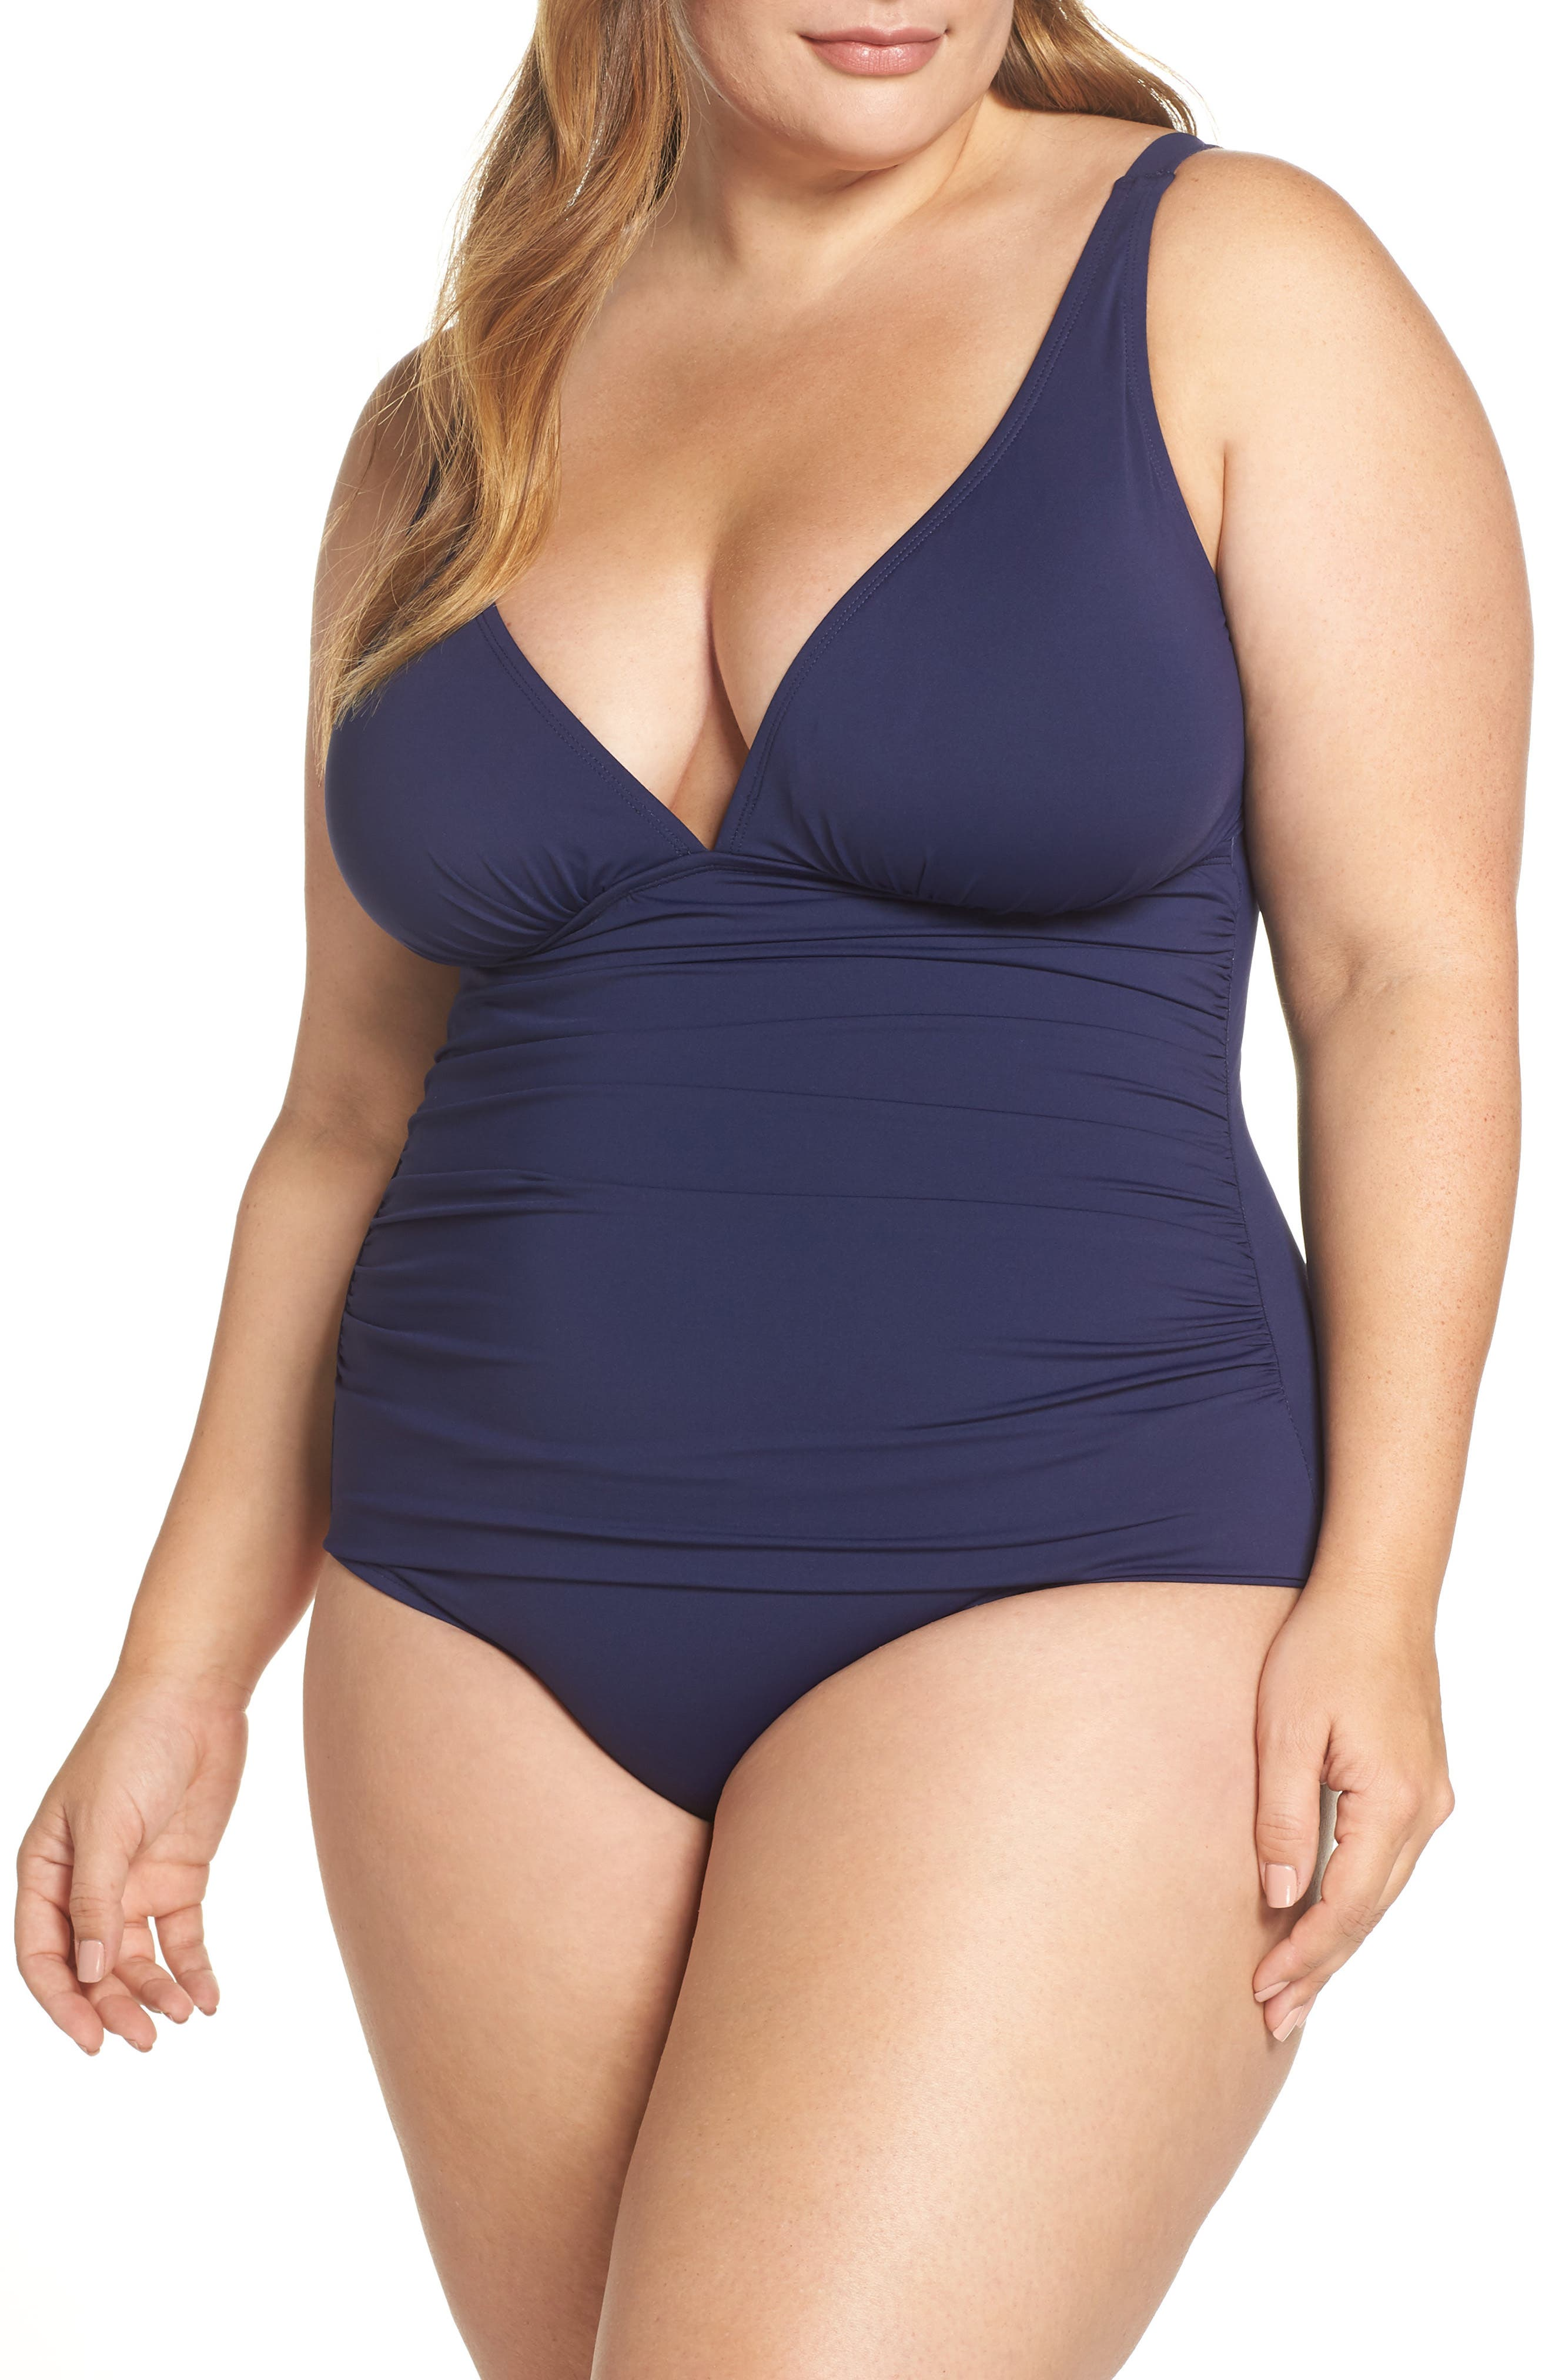 TOMMY BAHAMA, Pearl One-Piece Swimsuit, Main thumbnail 1, color, MARE